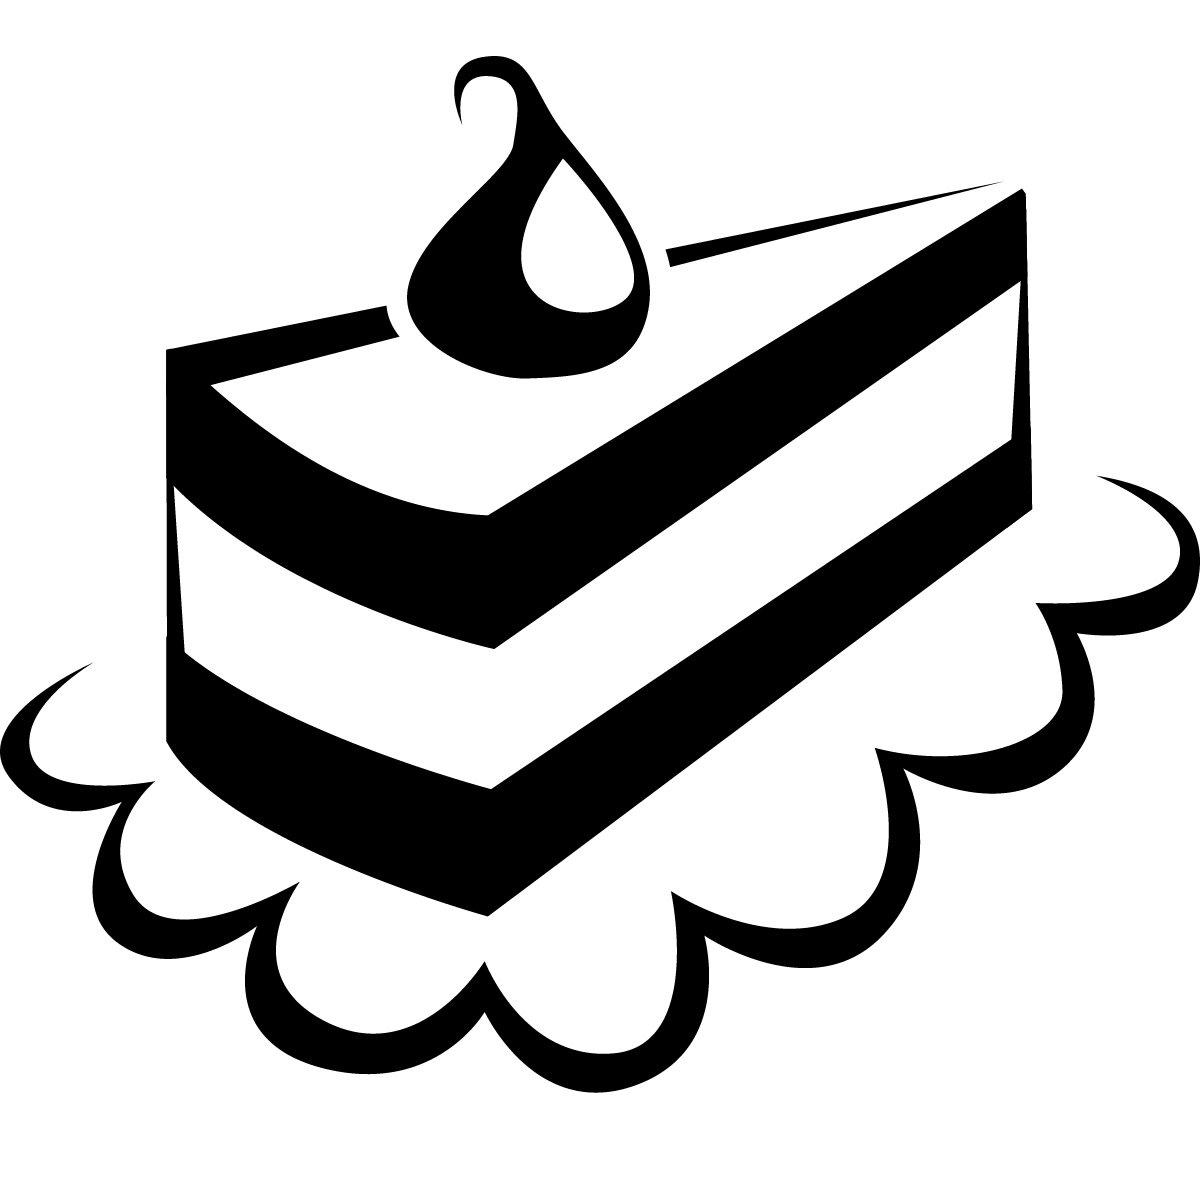 1200x1200 Cake Black And White Free To Use And Share Cake Clipart For Your